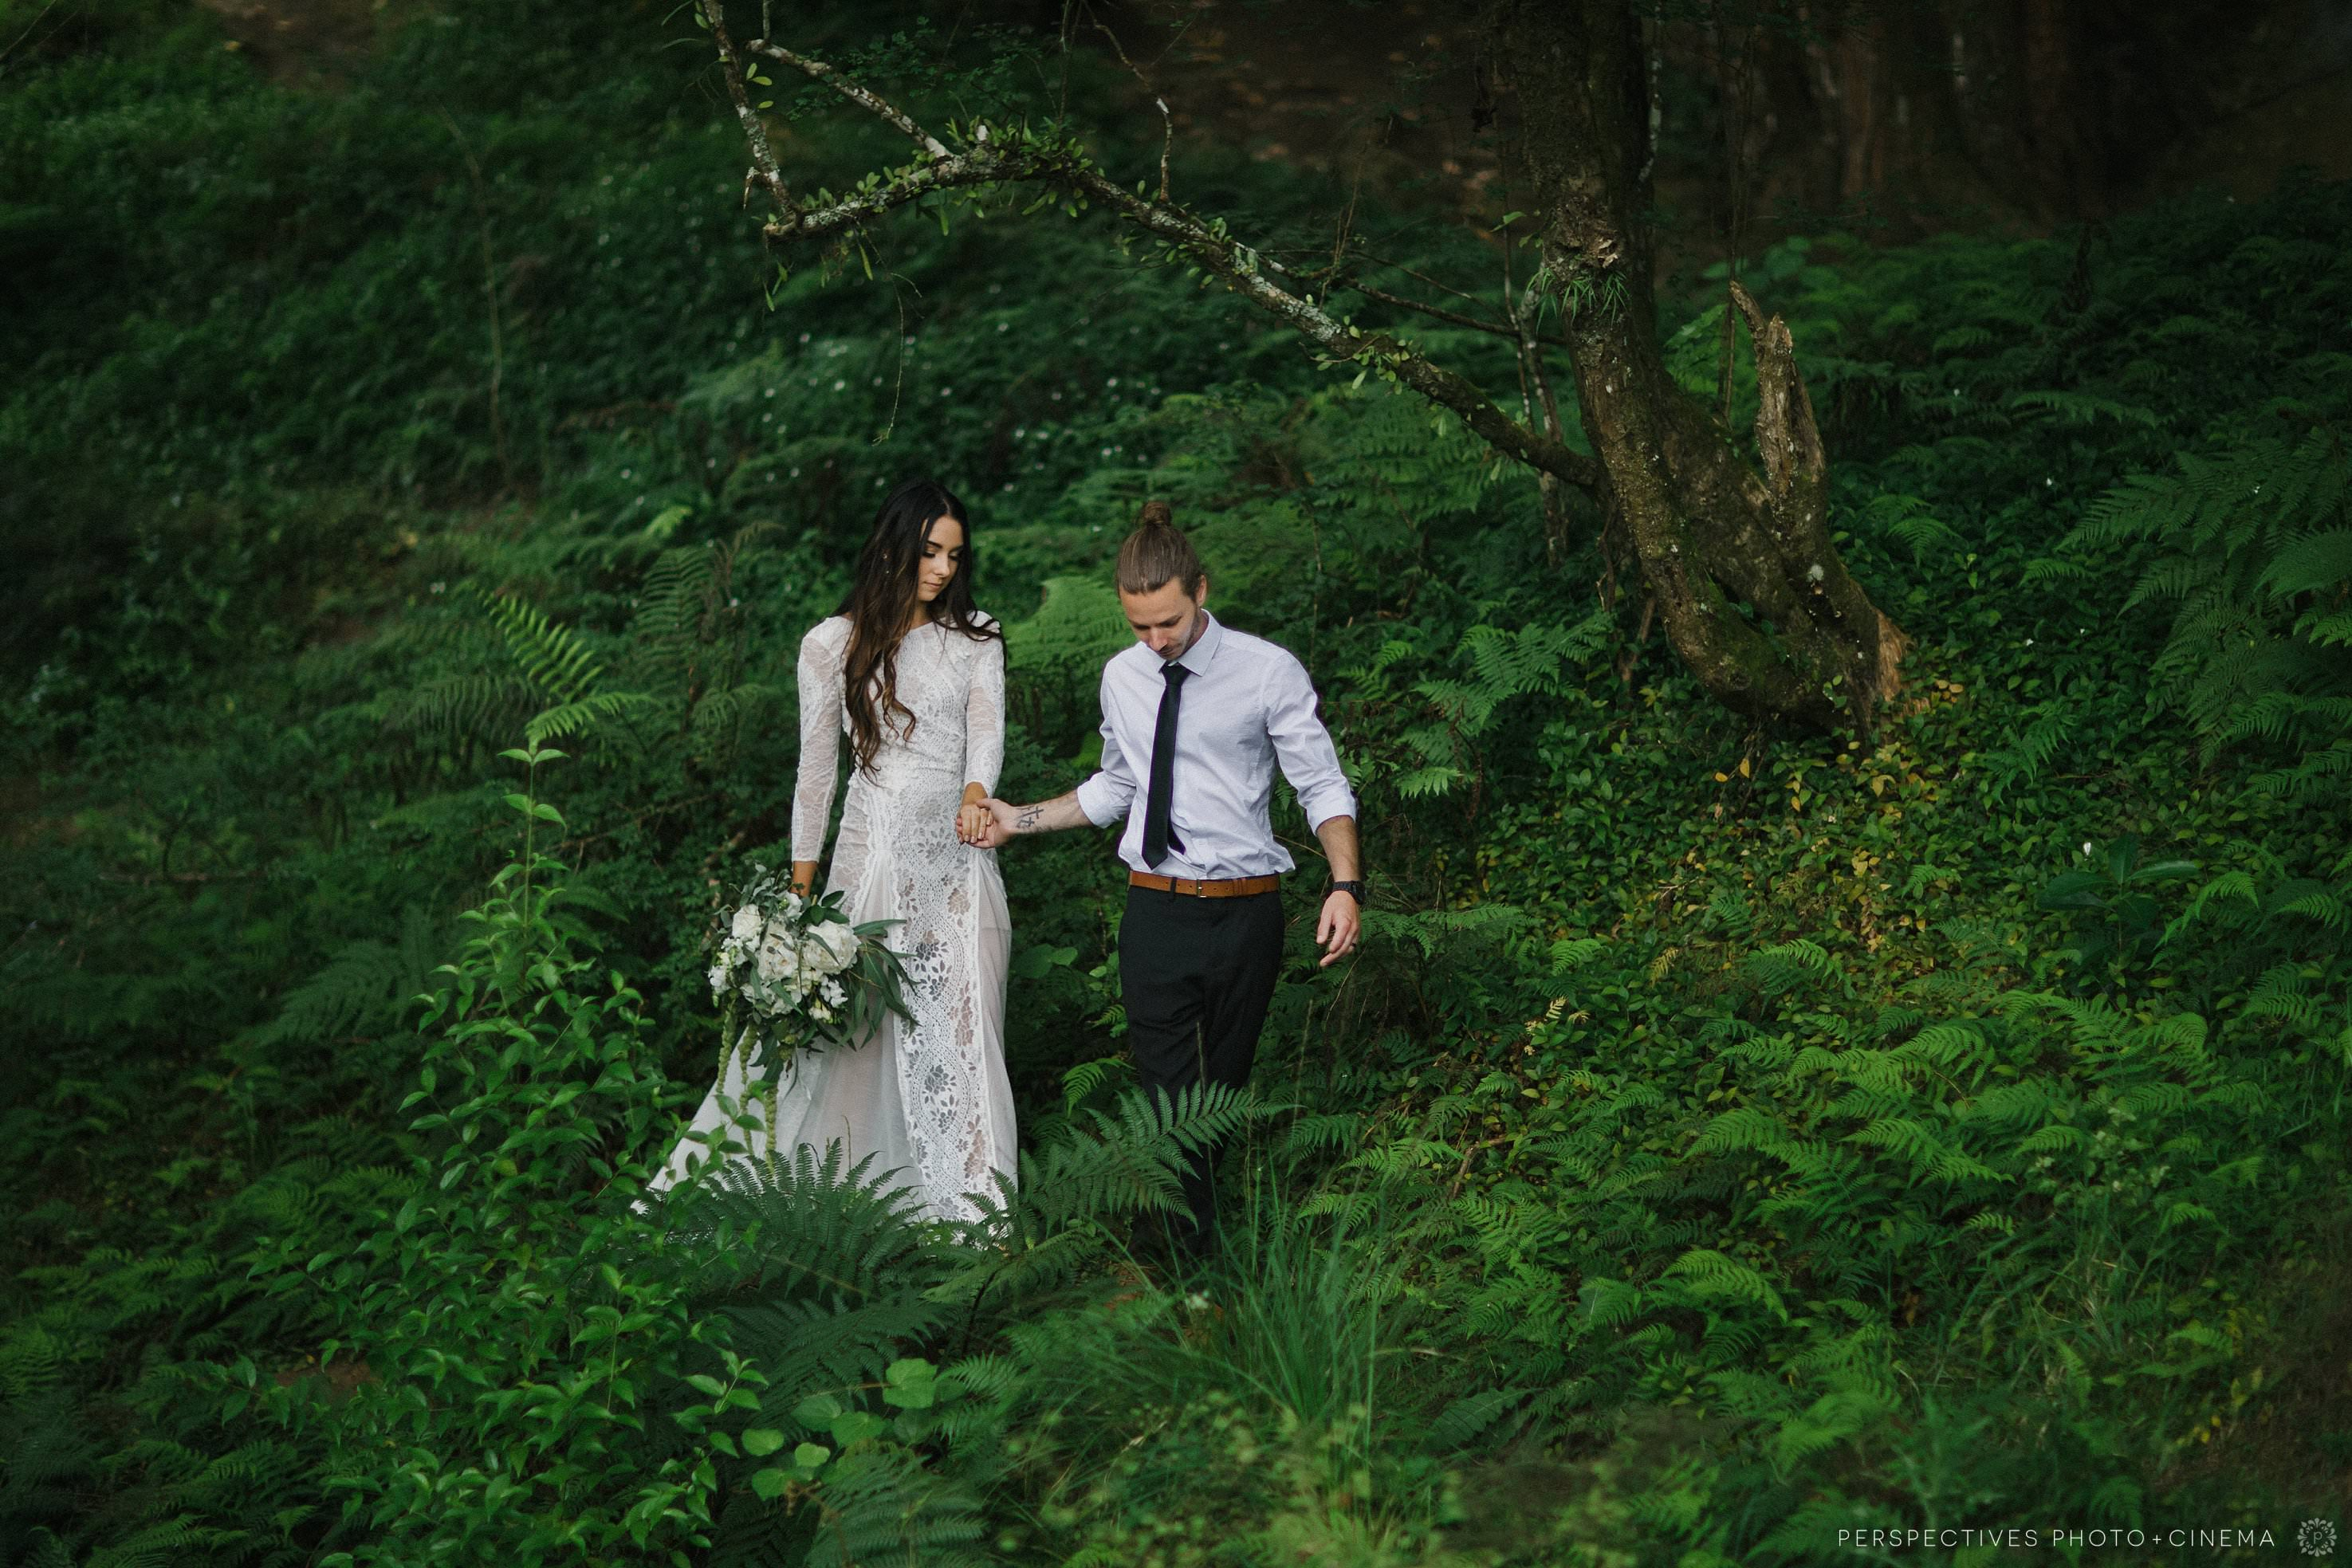 Forest wedding photo location